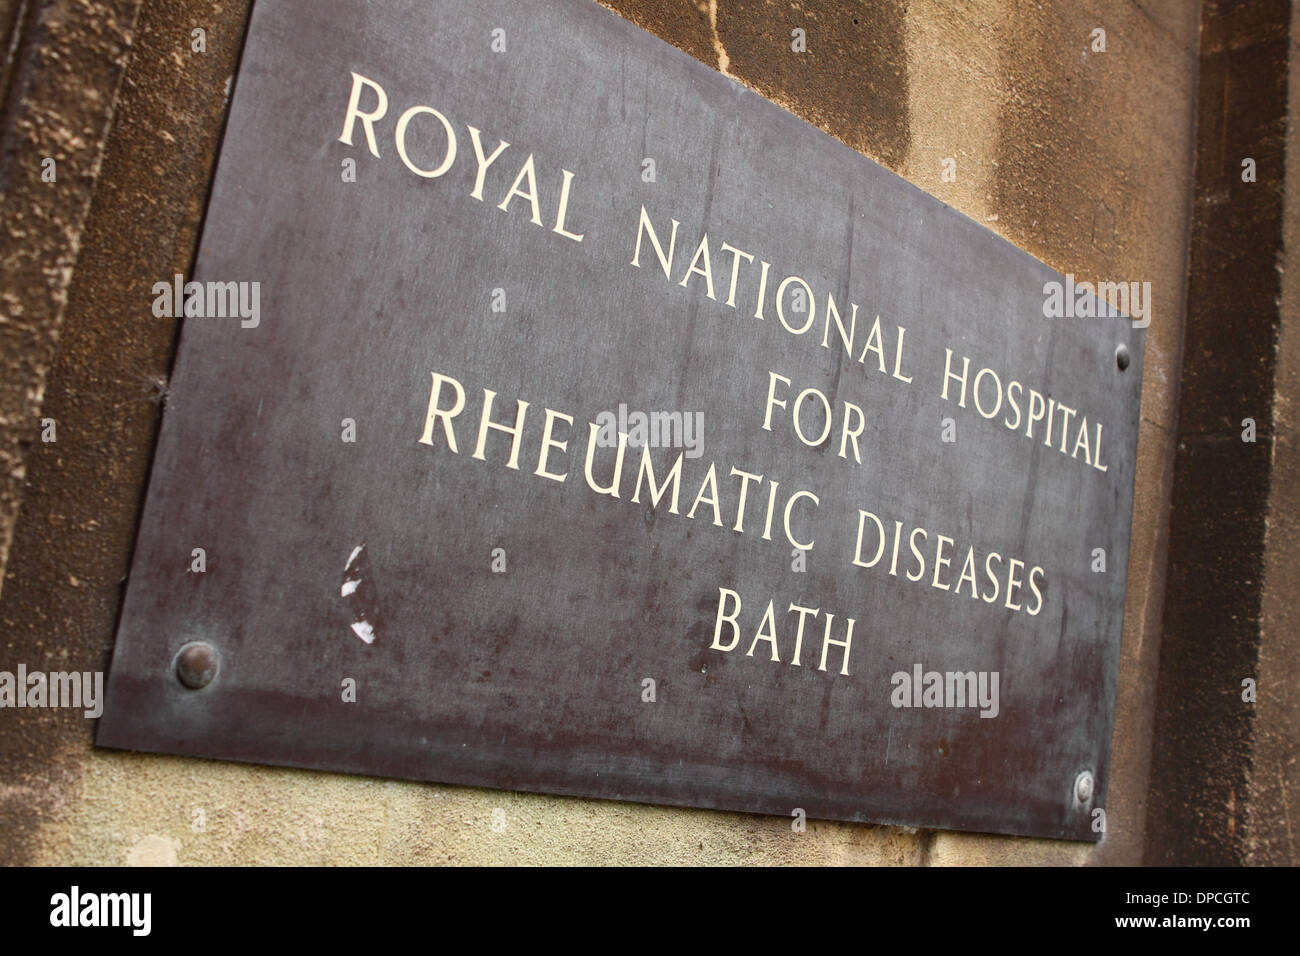 Bath England the Royal National Hospital for Rheumatic Diseases entrance sign - Stock Image